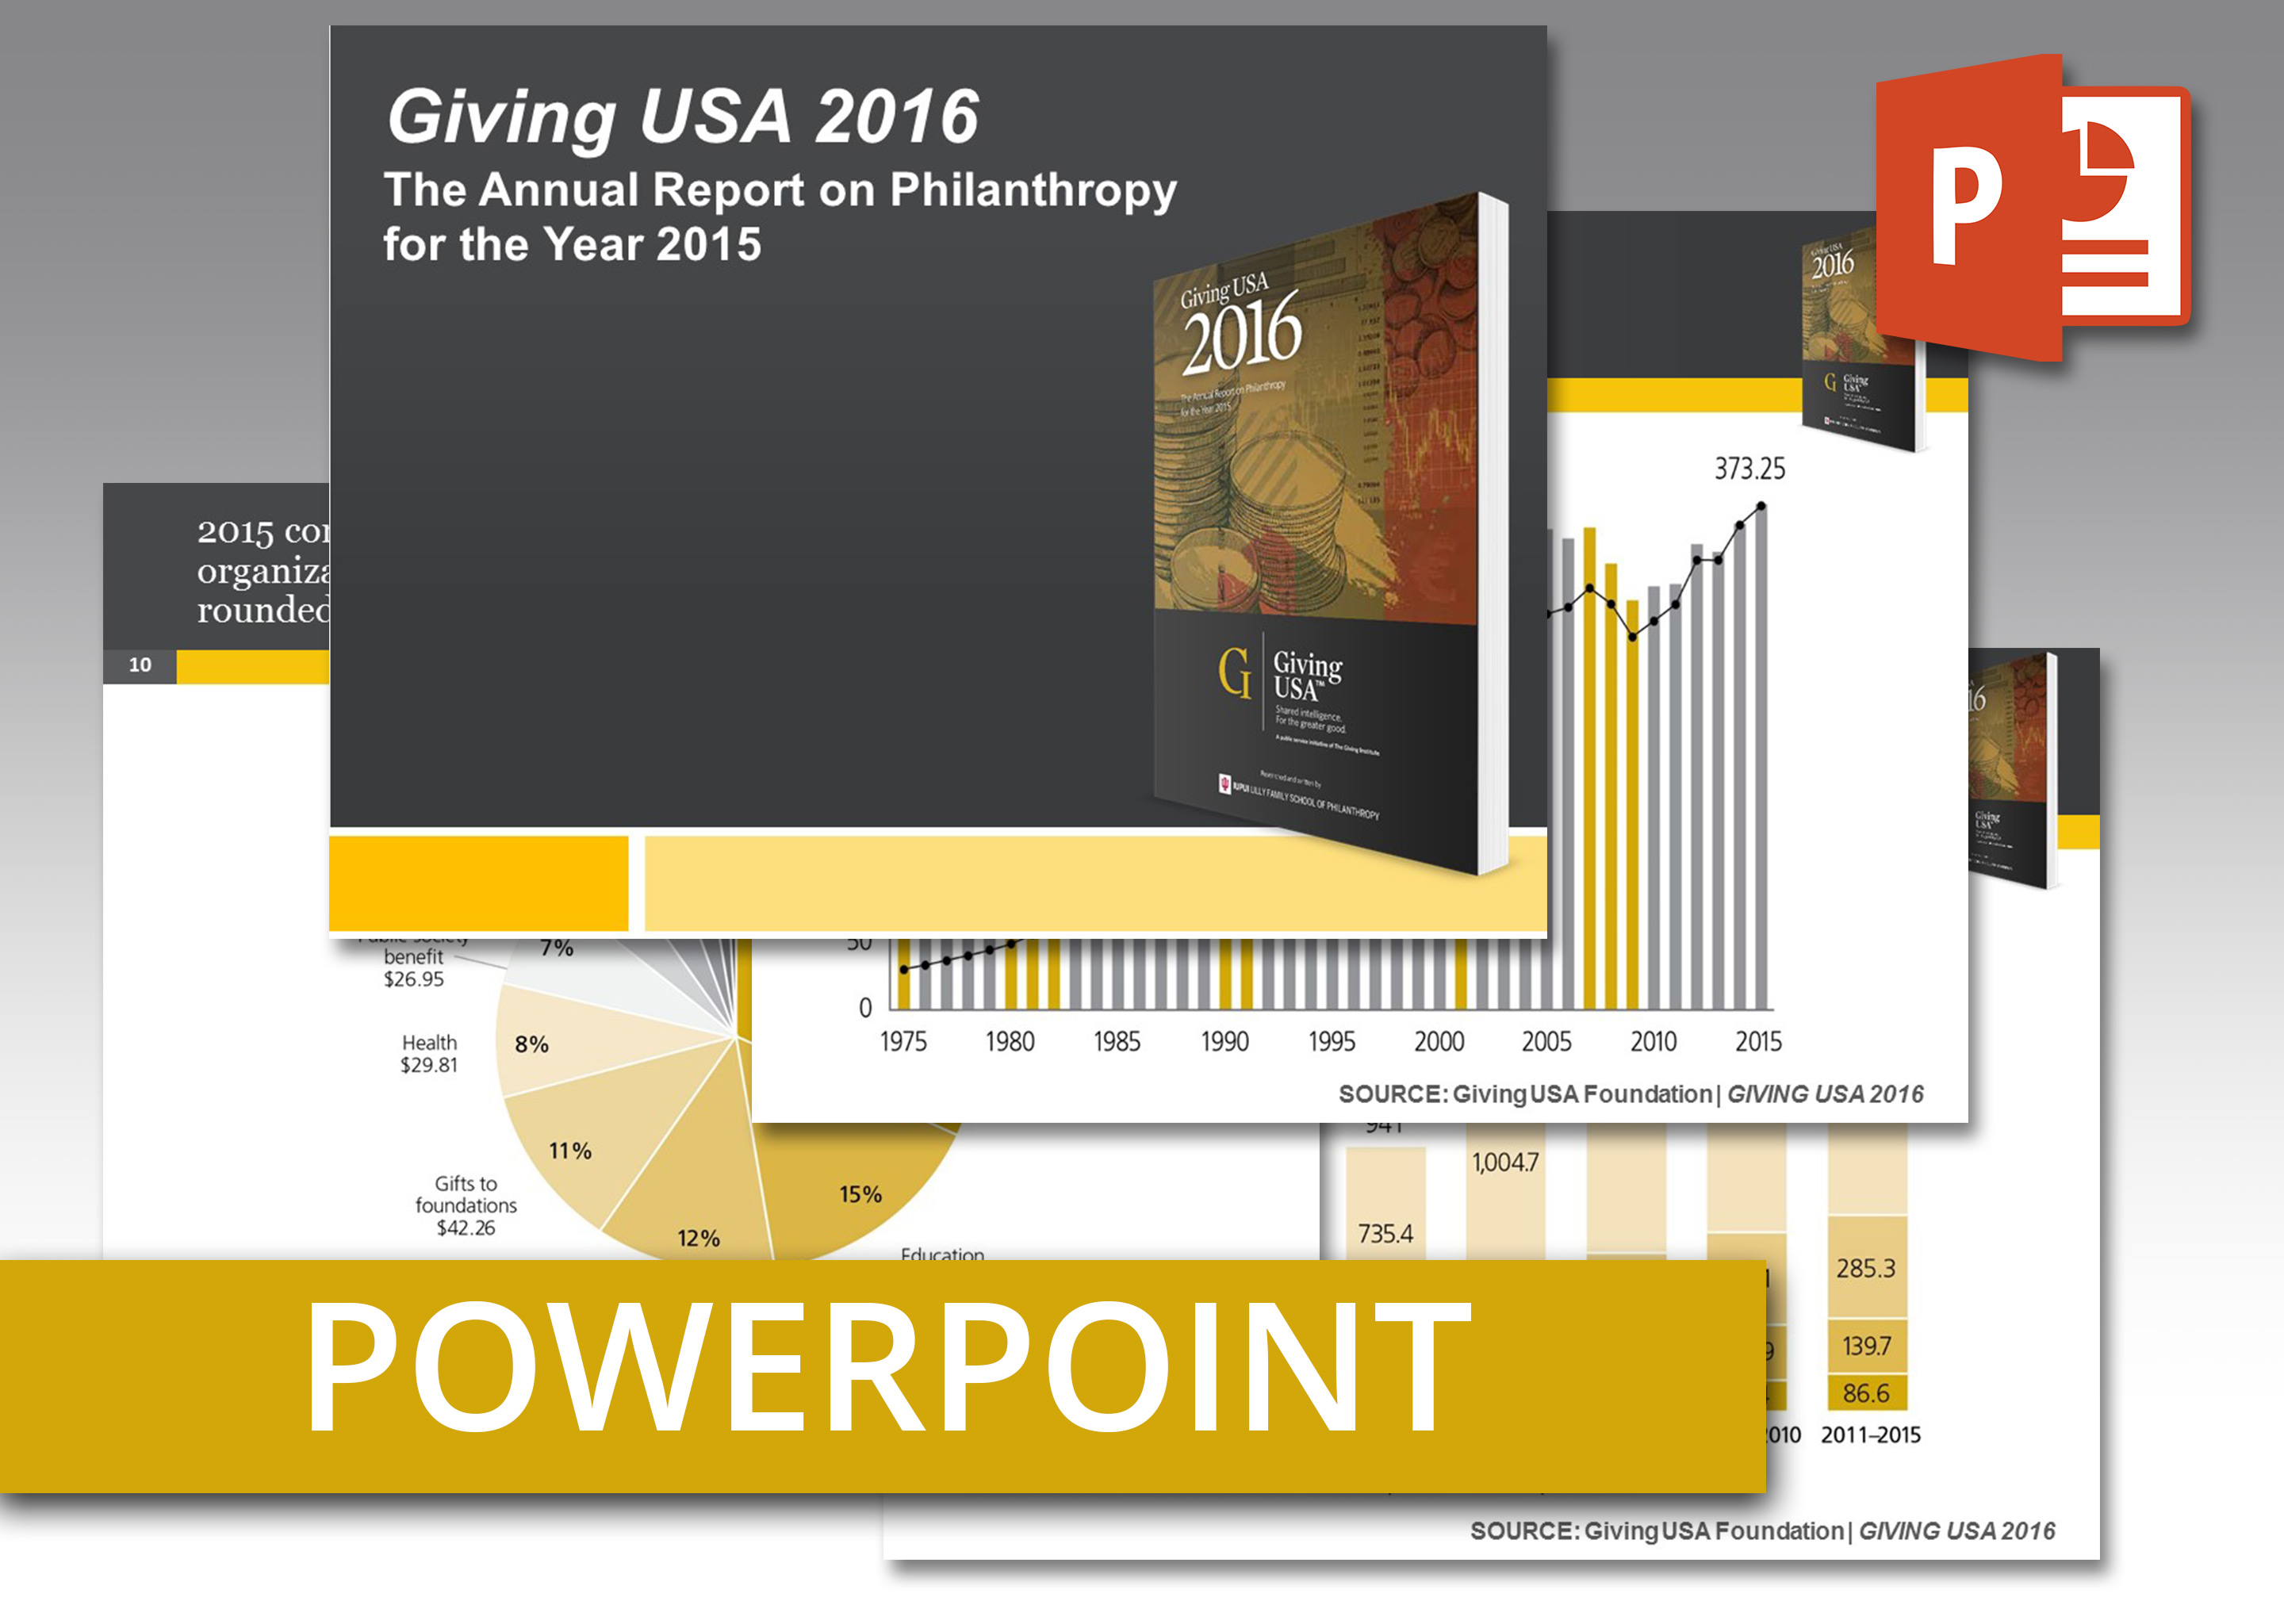 Coolmathgamesus  Marvellous Giving Usa  Powerpoint An Easytouse Presentation Of Report  With Magnificent Giving Usa  Powerpoint An Easytouse Presentation Of Report Findings Including Talking Points With Archaic World History Powerpoint Presentations Also Download Free Templates For Powerpoint  In Addition Powerpoint  For Dummies And Word To Powerpoint  As Well As Chart Template Powerpoint Additionally Literature Circles Powerpoint From Givingusaorg With Coolmathgamesus  Magnificent Giving Usa  Powerpoint An Easytouse Presentation Of Report  With Archaic Giving Usa  Powerpoint An Easytouse Presentation Of Report Findings Including Talking Points And Marvellous World History Powerpoint Presentations Also Download Free Templates For Powerpoint  In Addition Powerpoint  For Dummies From Givingusaorg